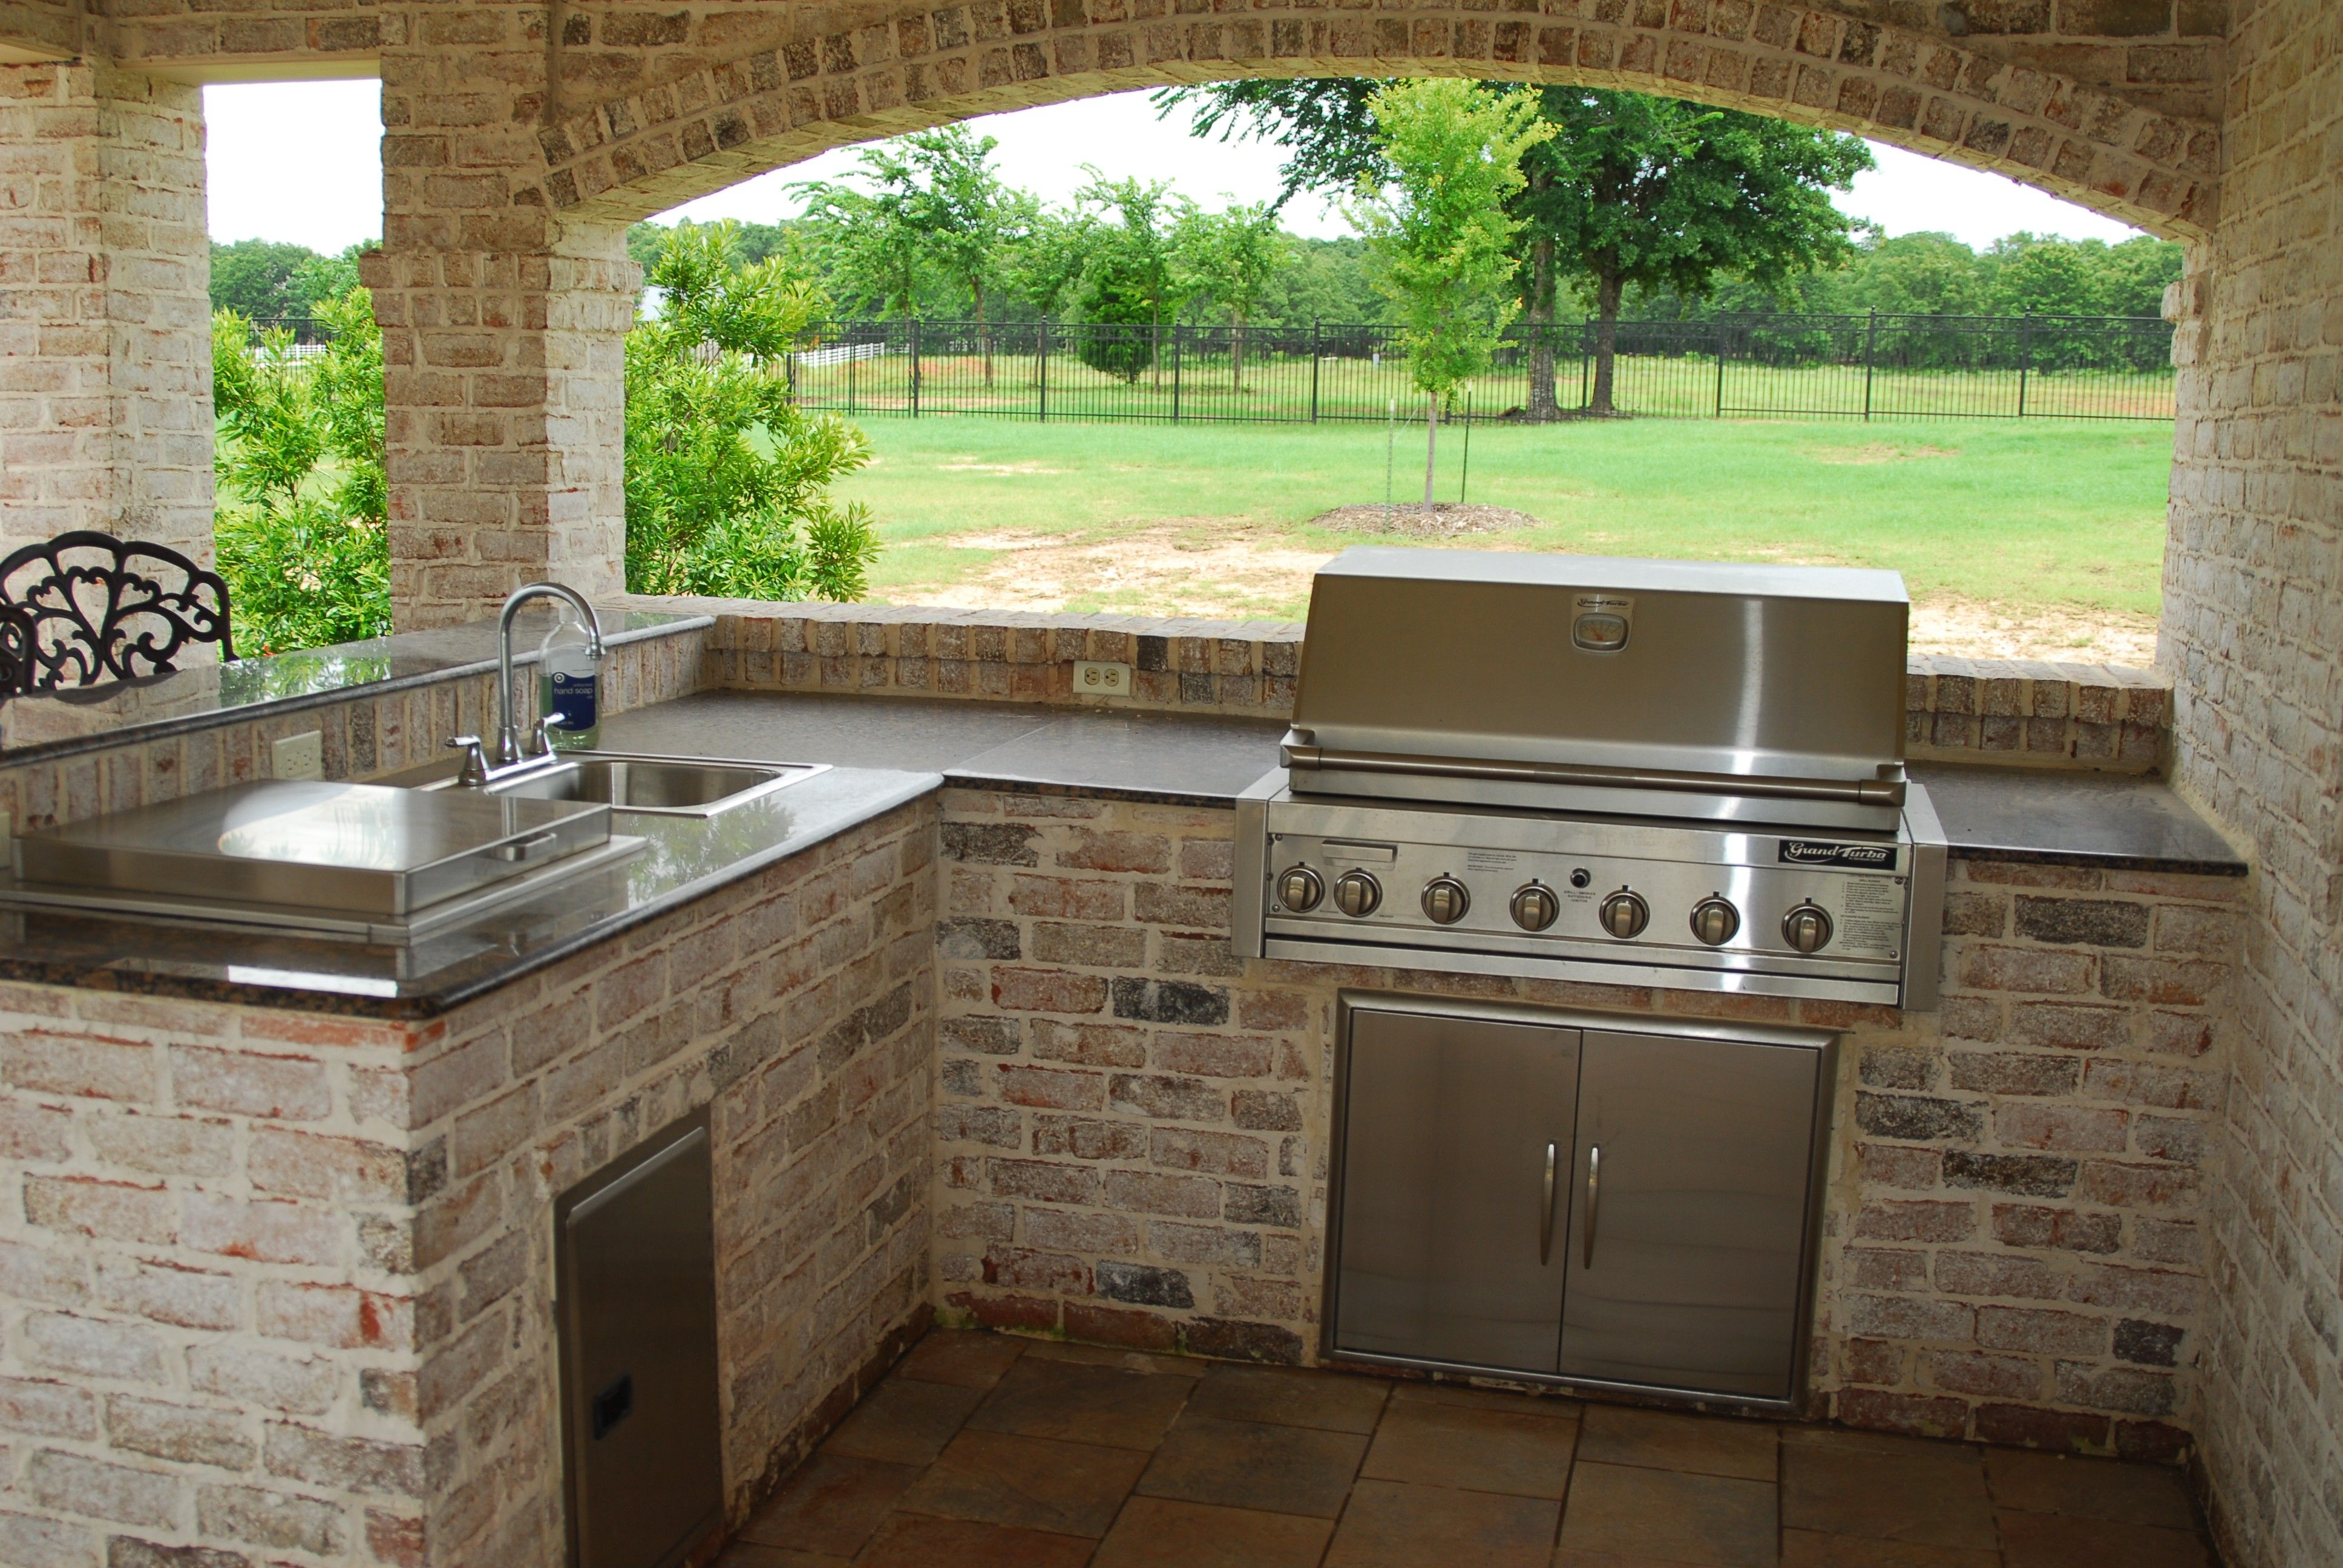 Contemporary Outdoor Kitchen Designs With Featuring Metal Chrome Conctruction Kitchen And Natural Ex Diy Outdoor Kitchen Outdoor Kitchen Plans Backyard Kitchen